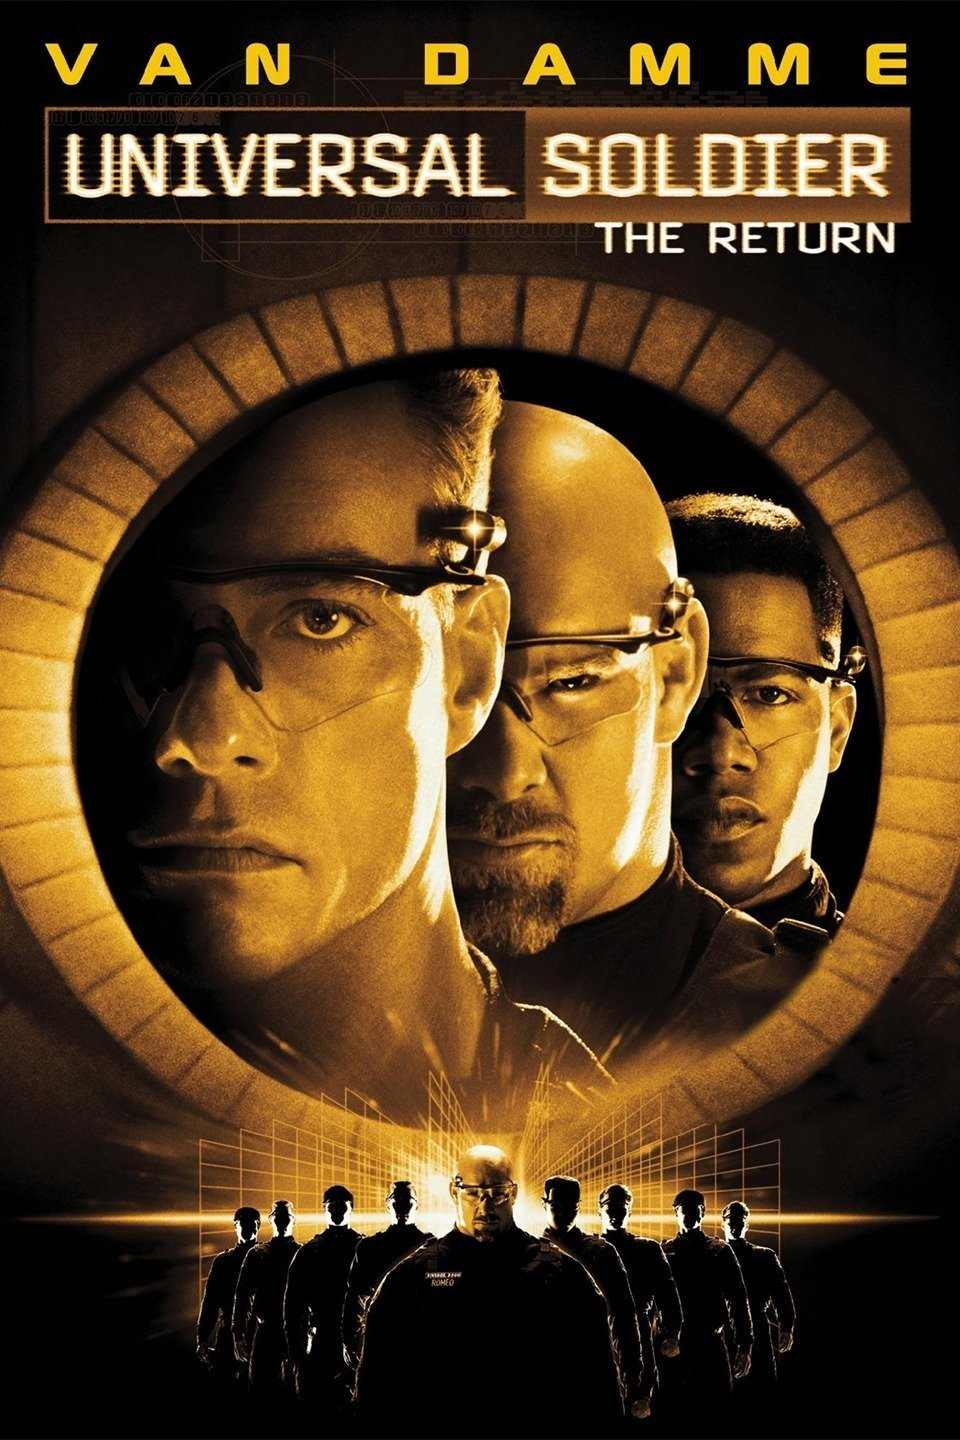 Universal Soldier The Return 1999 Full Movie Download BluRay 720p